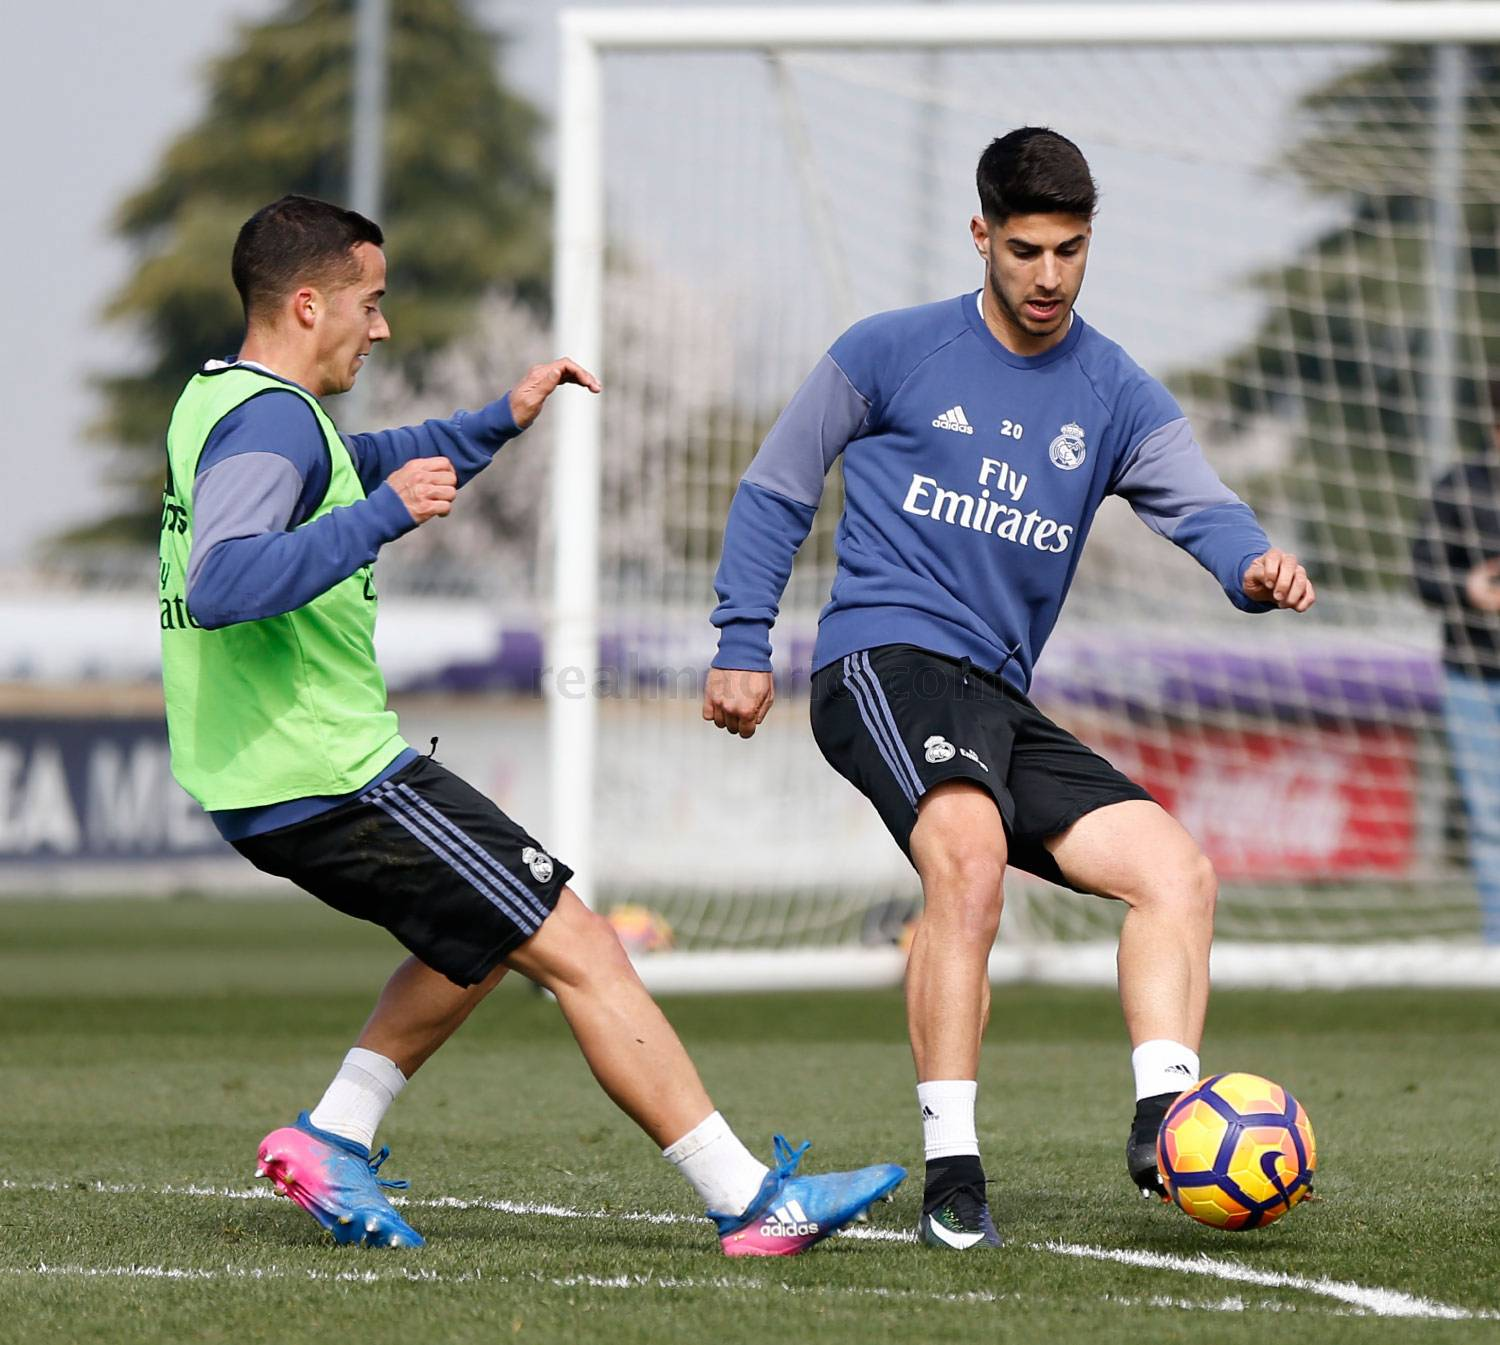 Real Madrid - Entrenamiento del Real Madrid - 02-03-2017